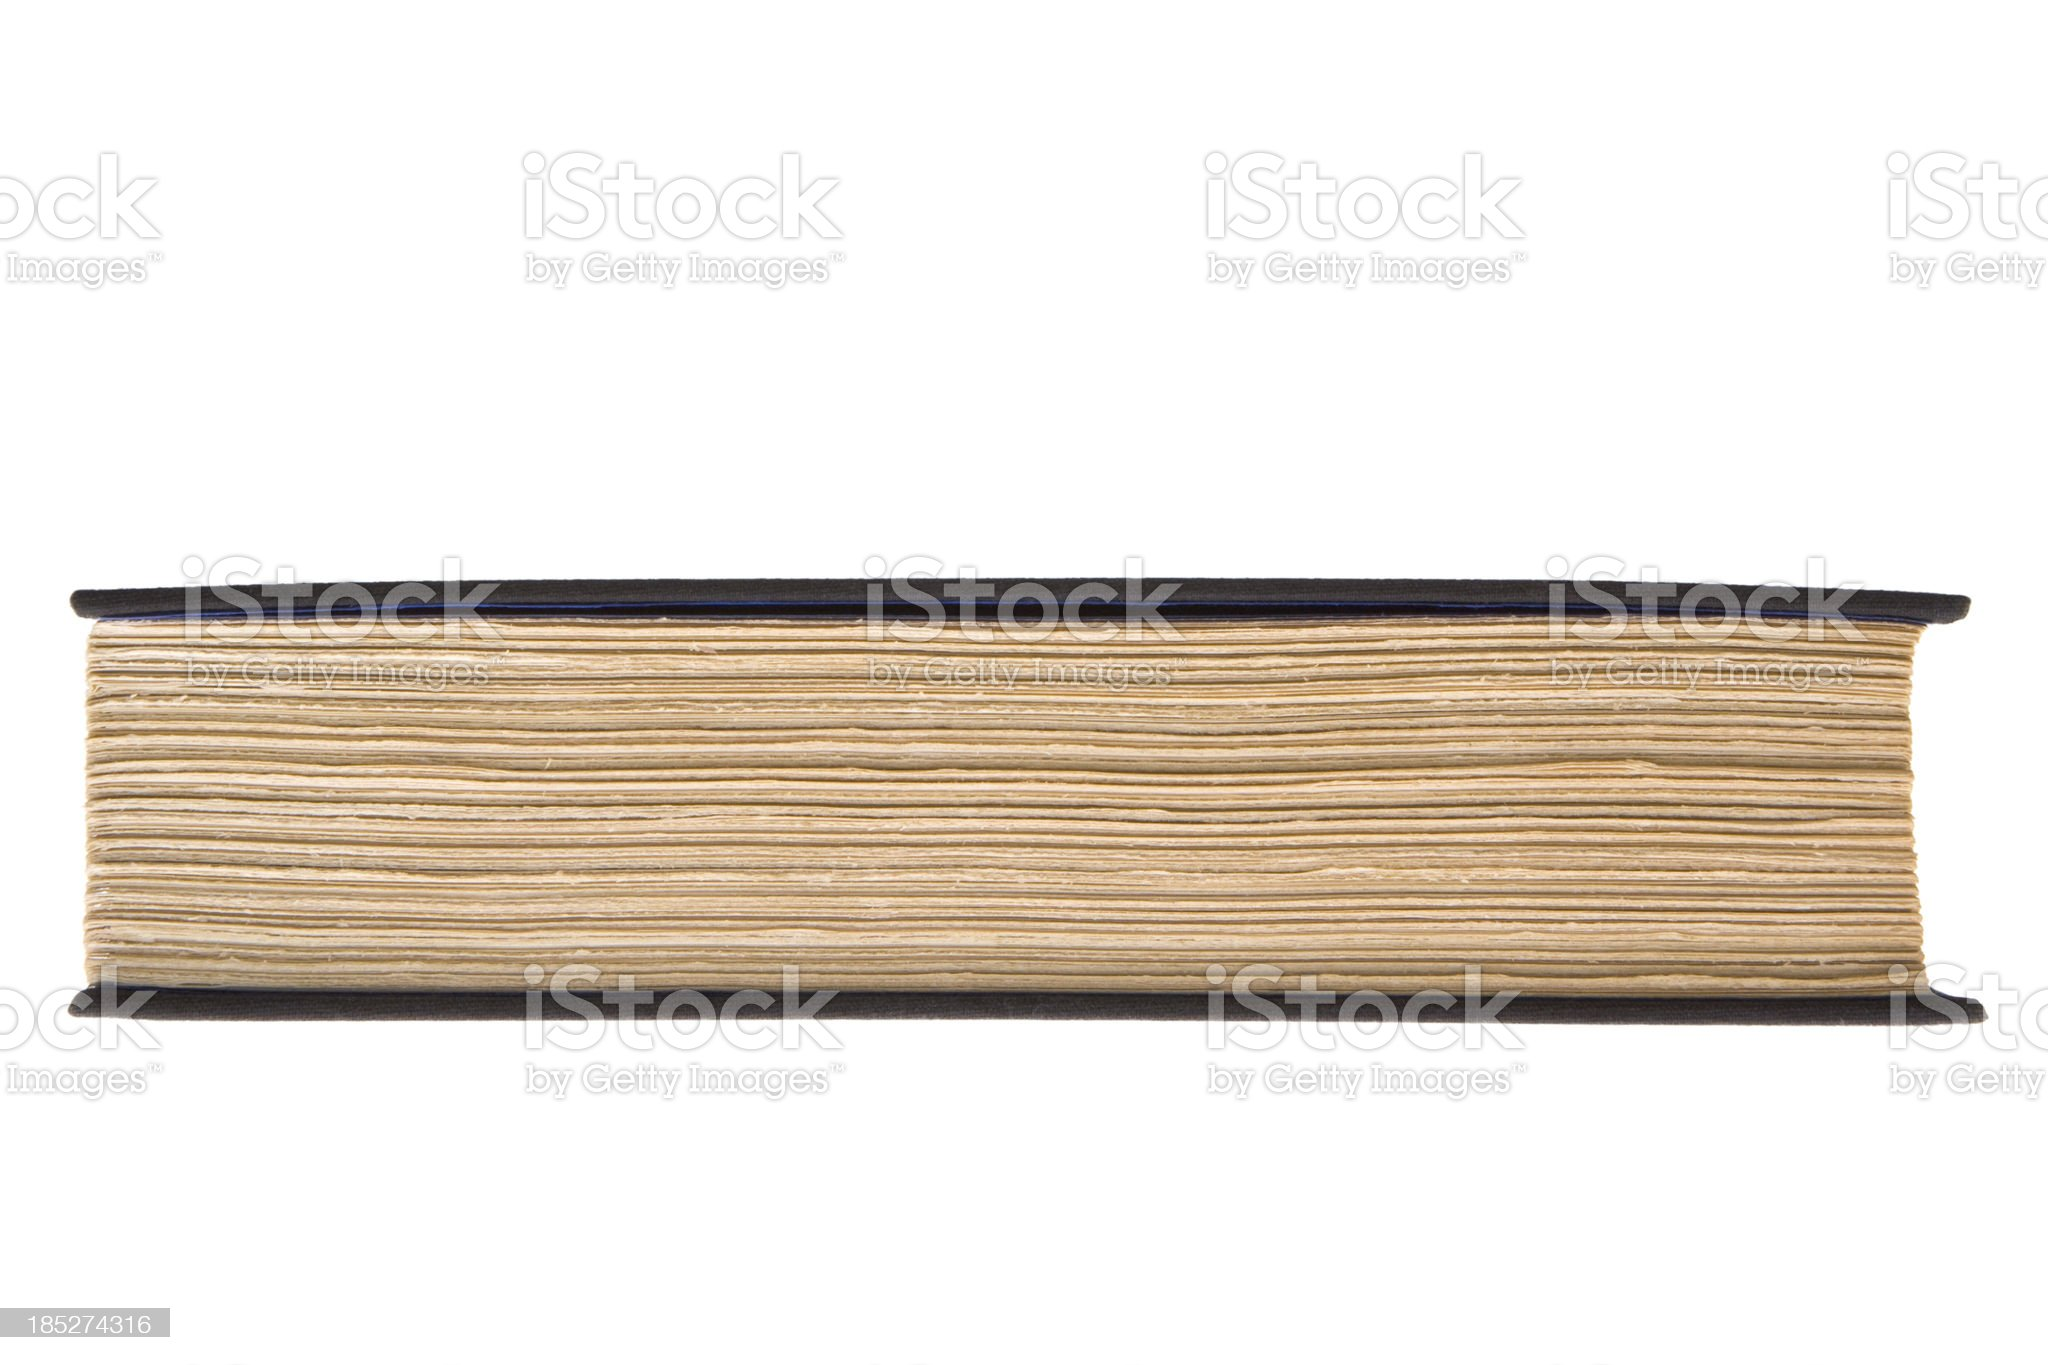 Edge view of old hardcover book with roughly trimmed pages royalty-free stock photo